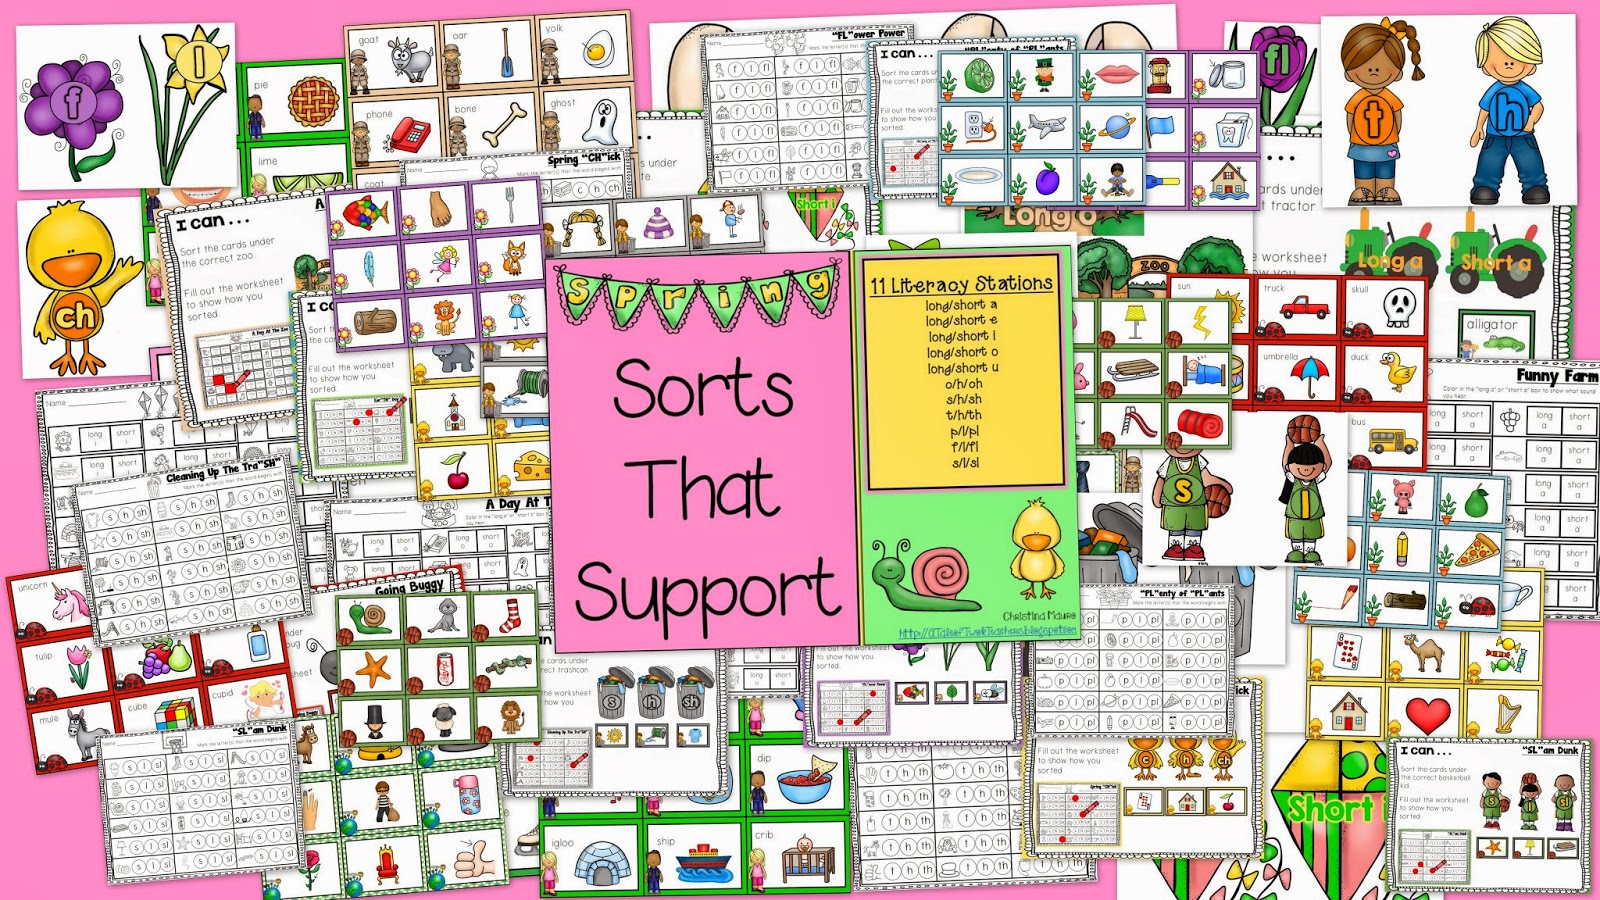 http://www.teacherspayteachers.com/Product/Sorts-that-Support-Spring-Edition-1164583